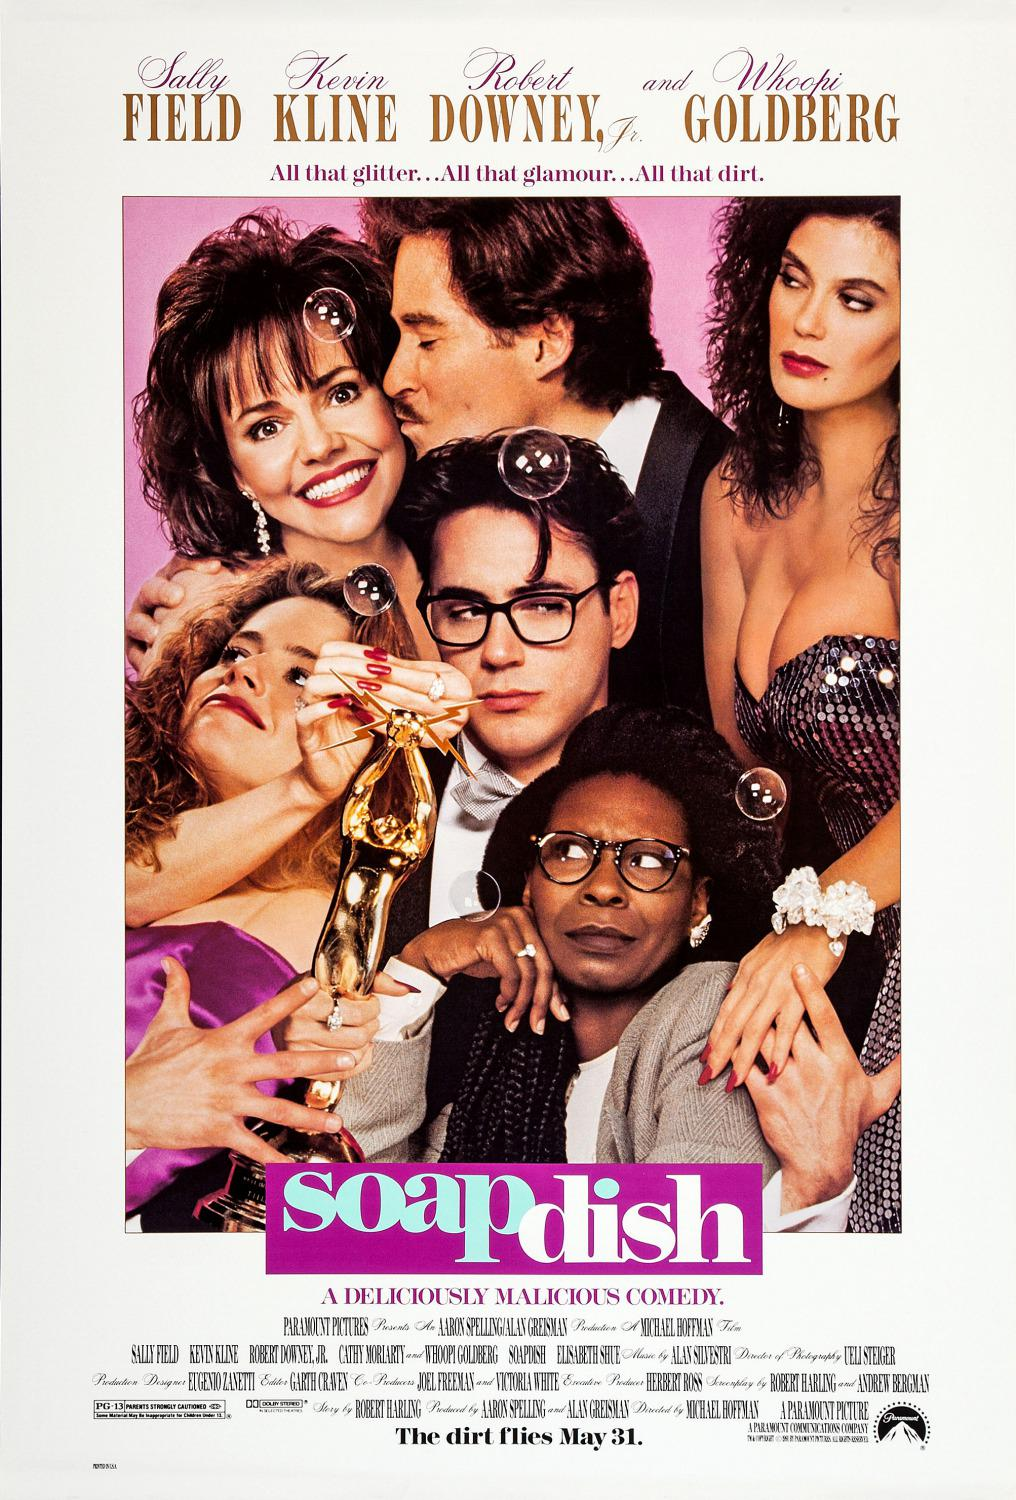 Soapdish - a deliciously malicious comedy - Sally Field - Kevin Kline - Robert Downey Jr. - Whoopi Goldberg